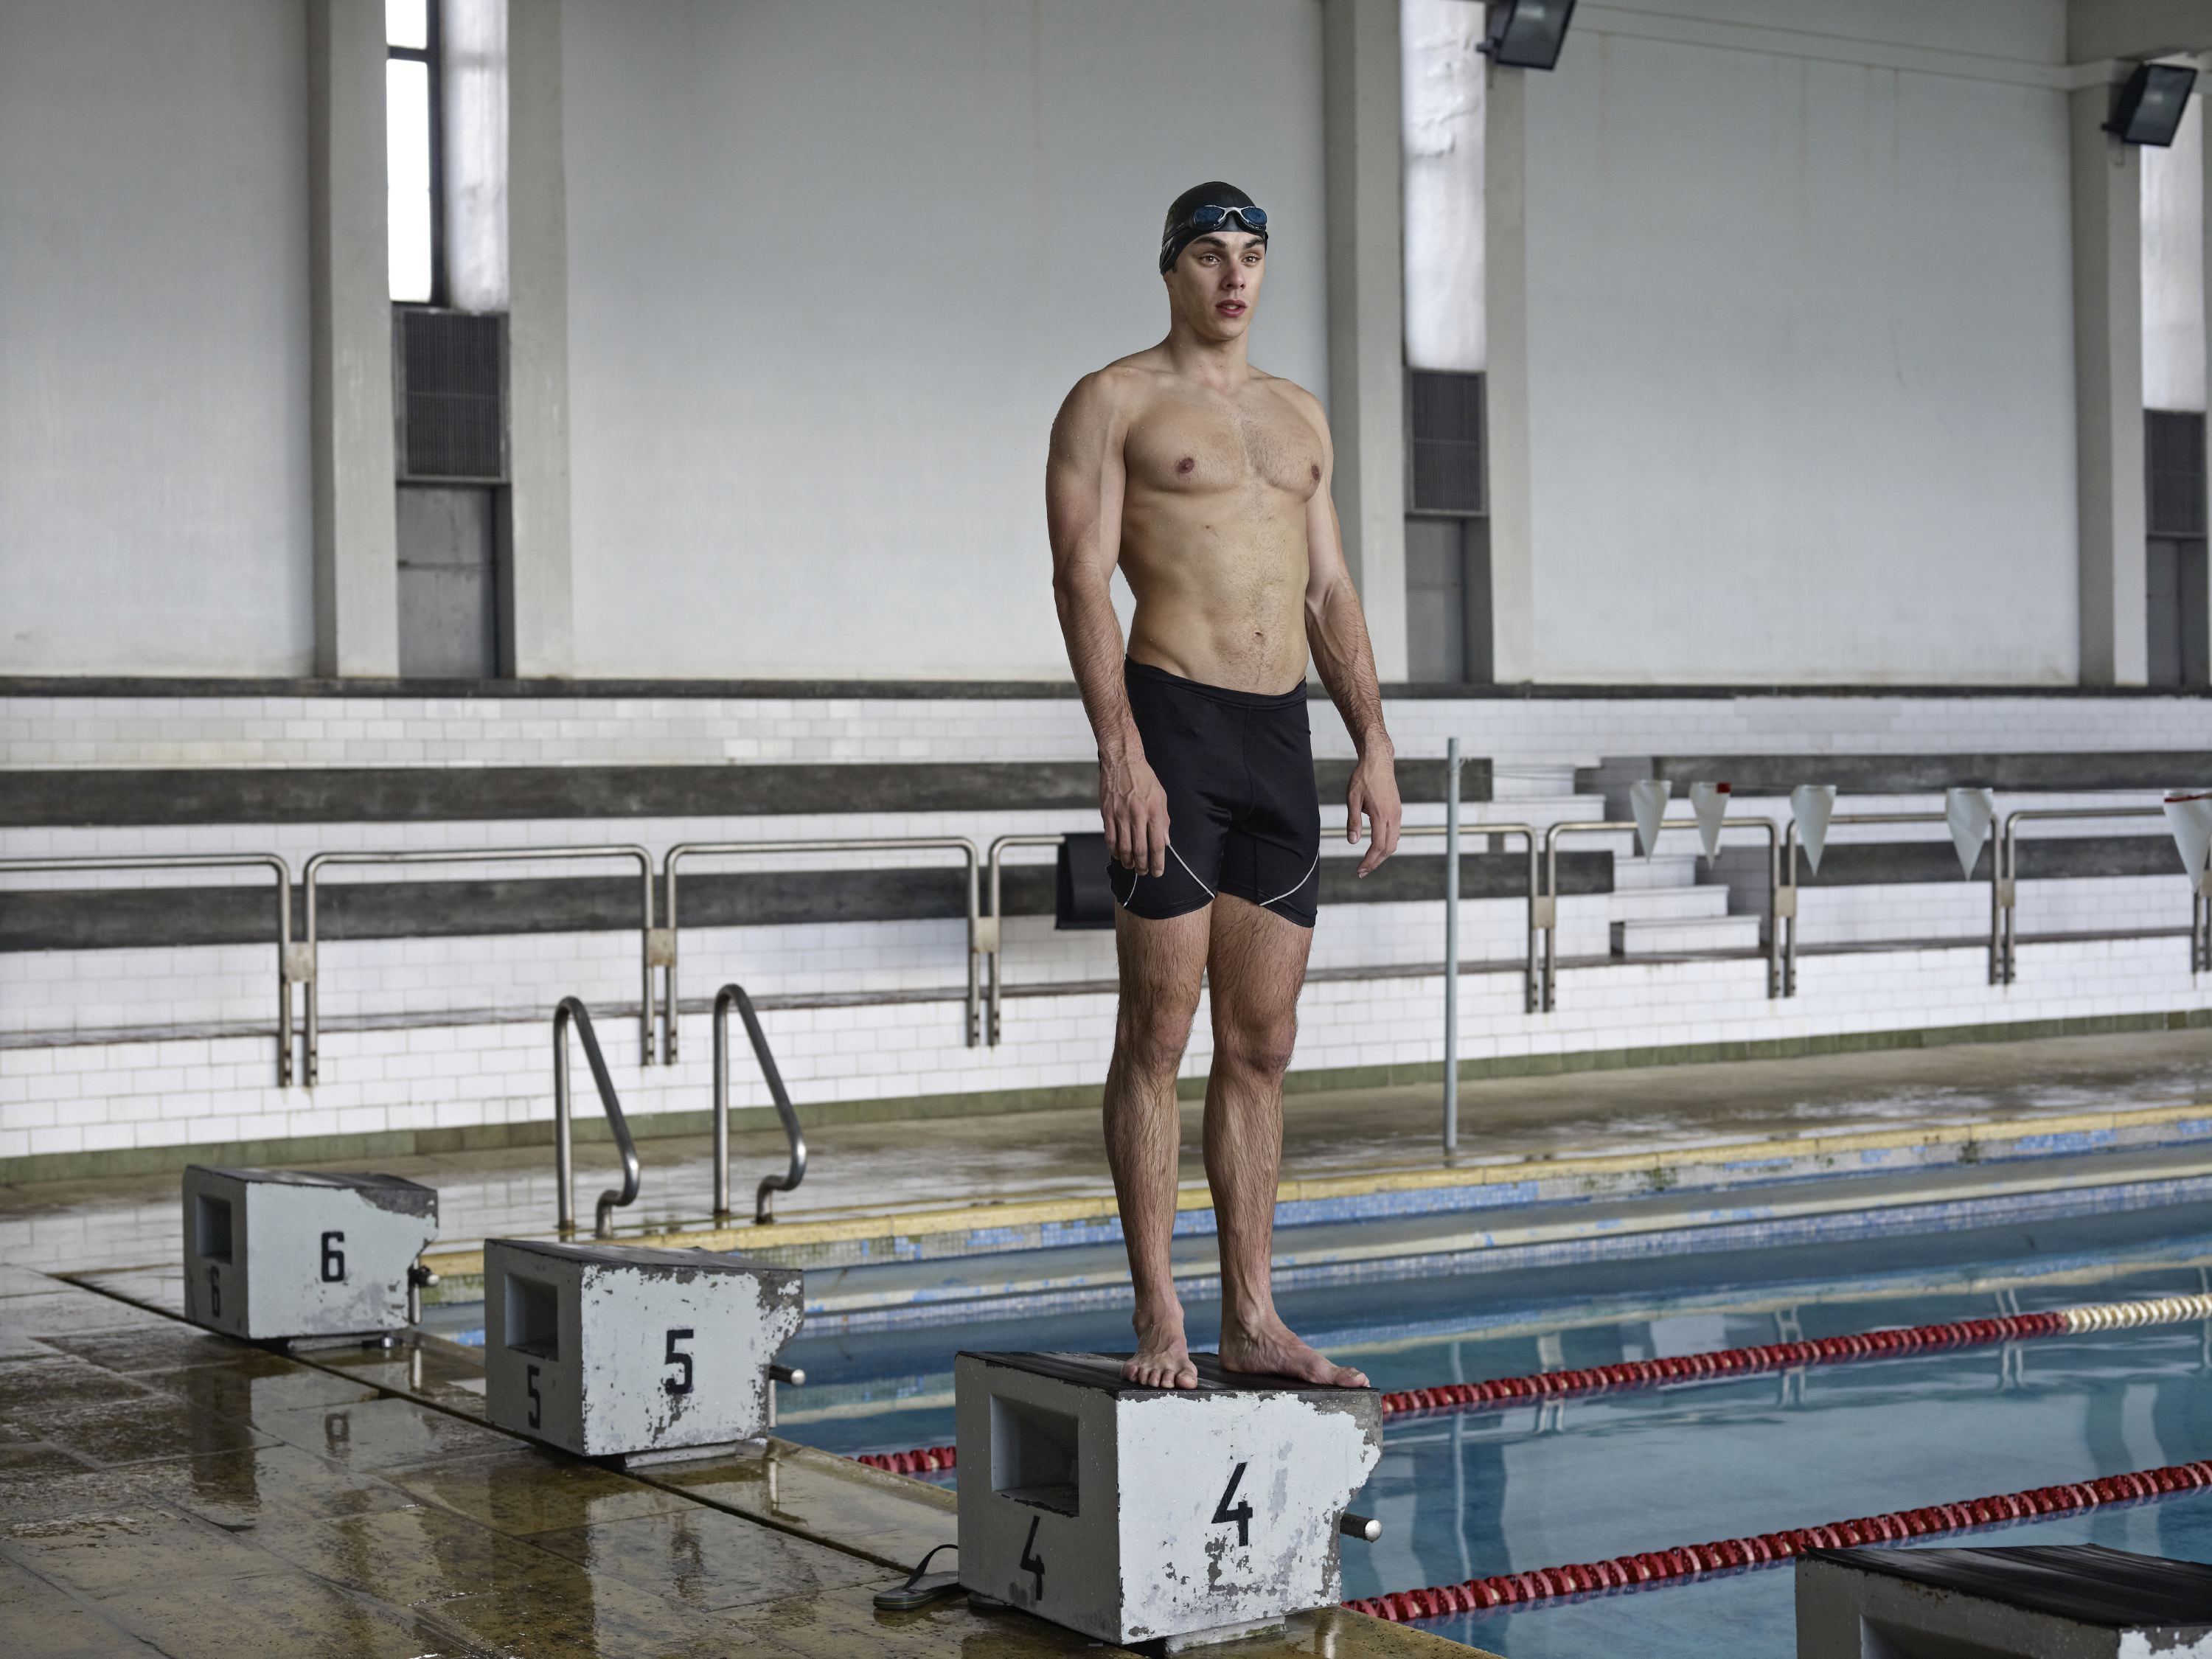 A cadet in the swimming pool of the Academia Militar, Lisbon, Portugal, Dec. 4, 2012.